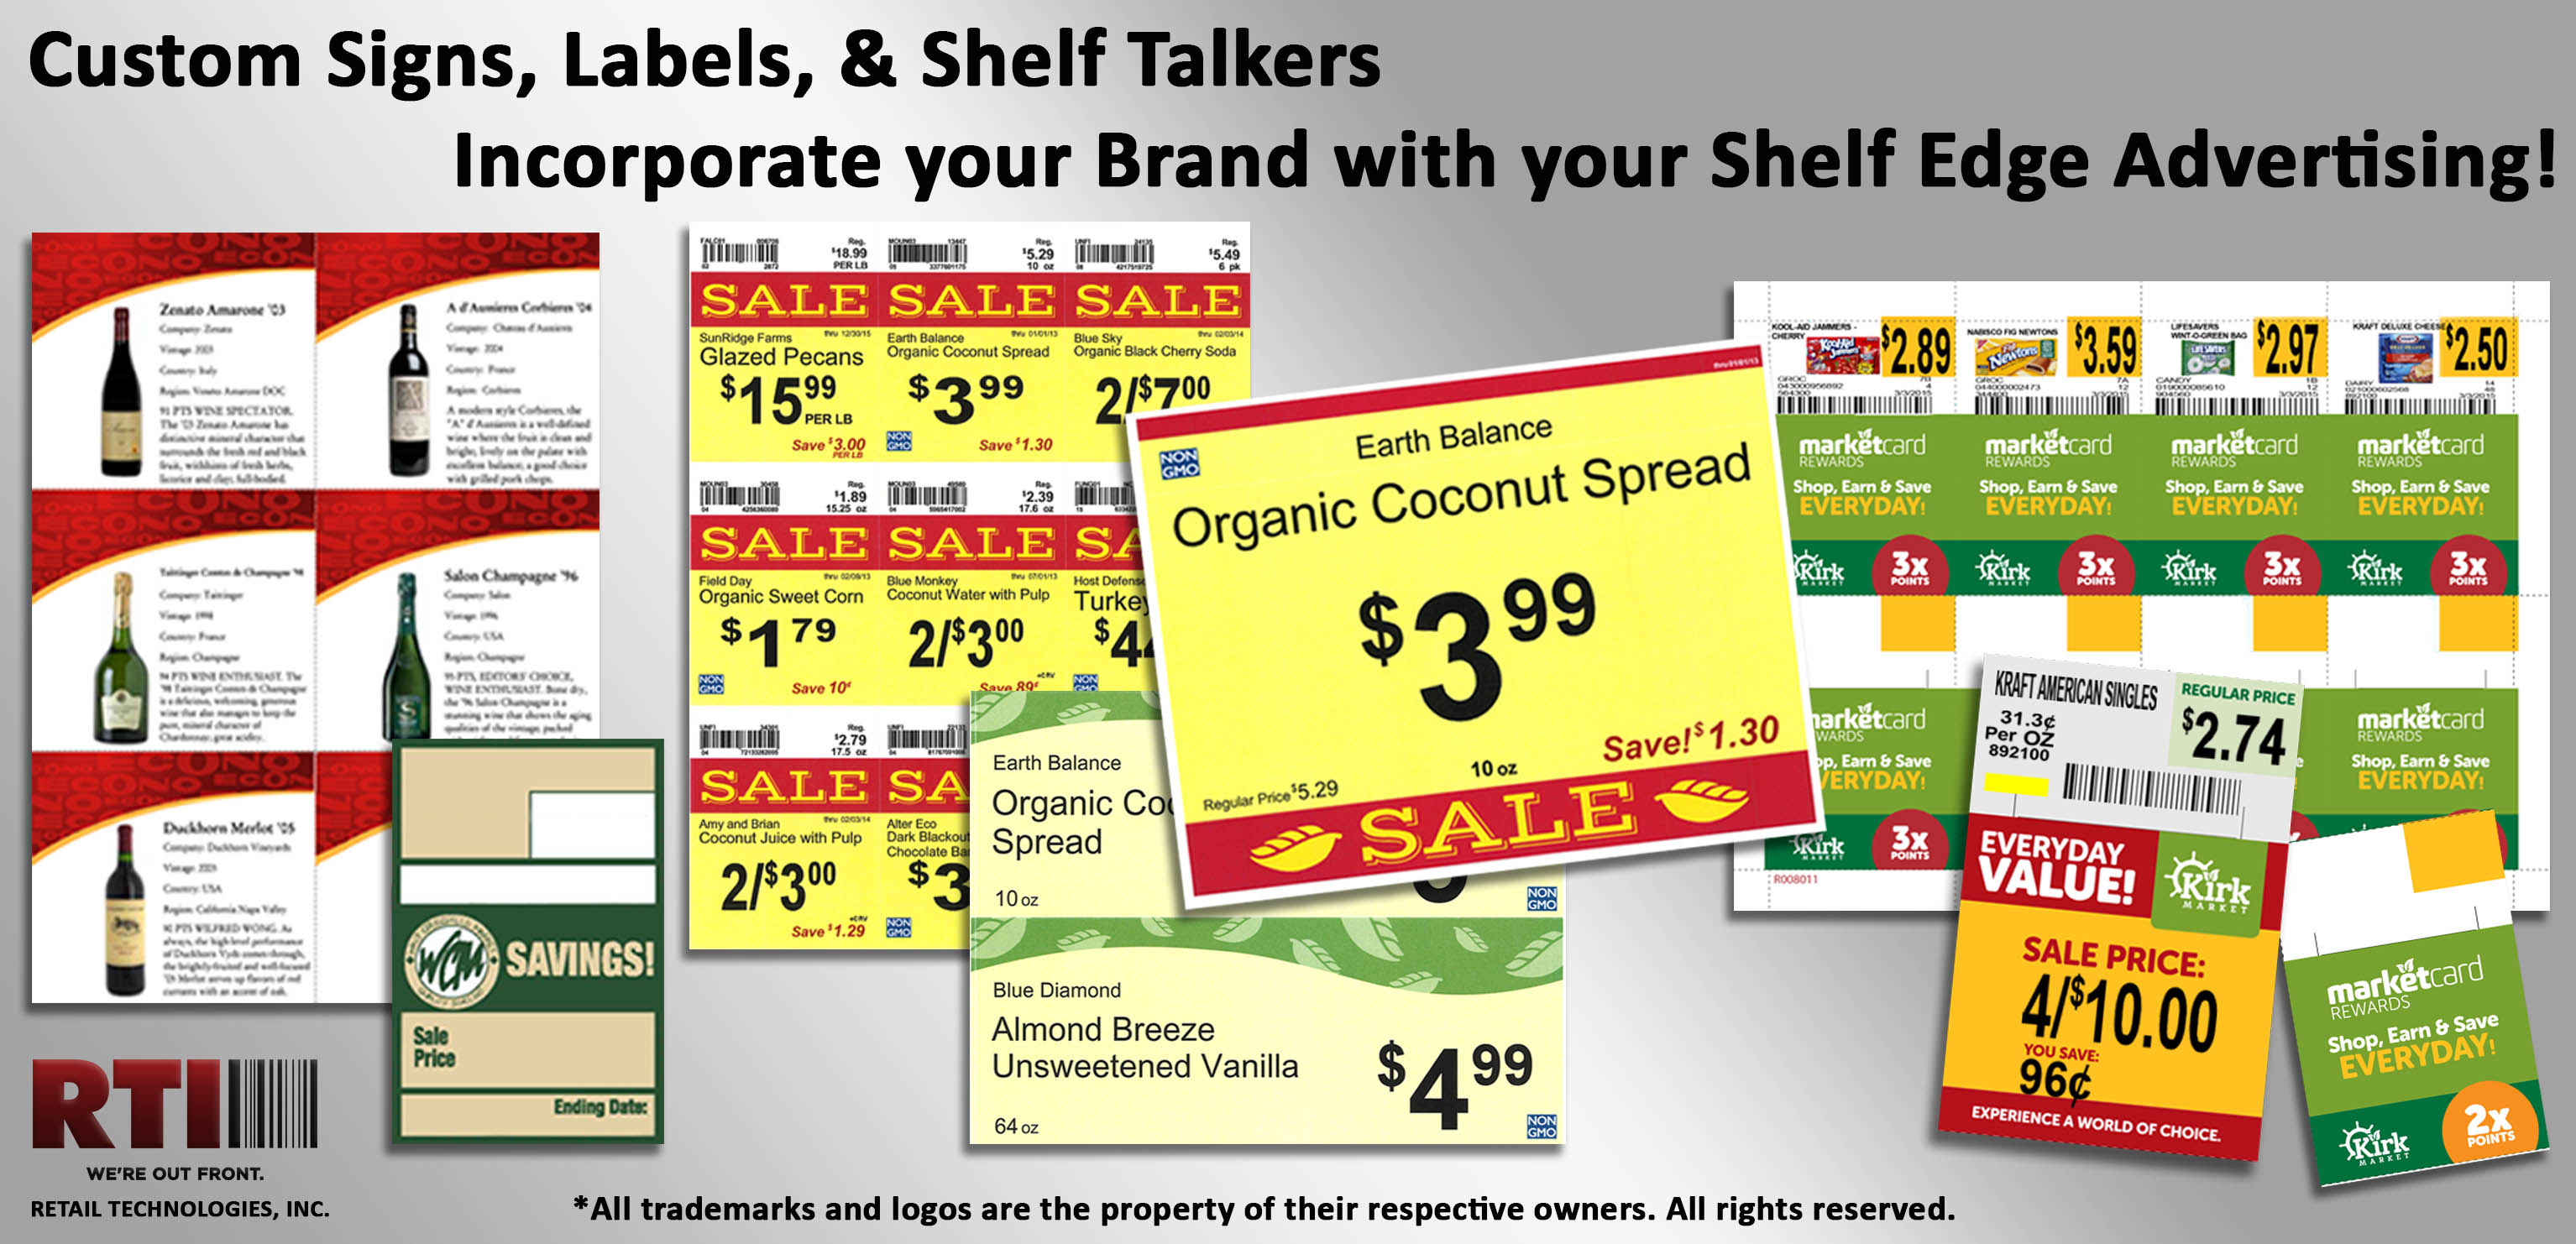 Custom Signs Price Cards Labels And Shelf Talkers Made